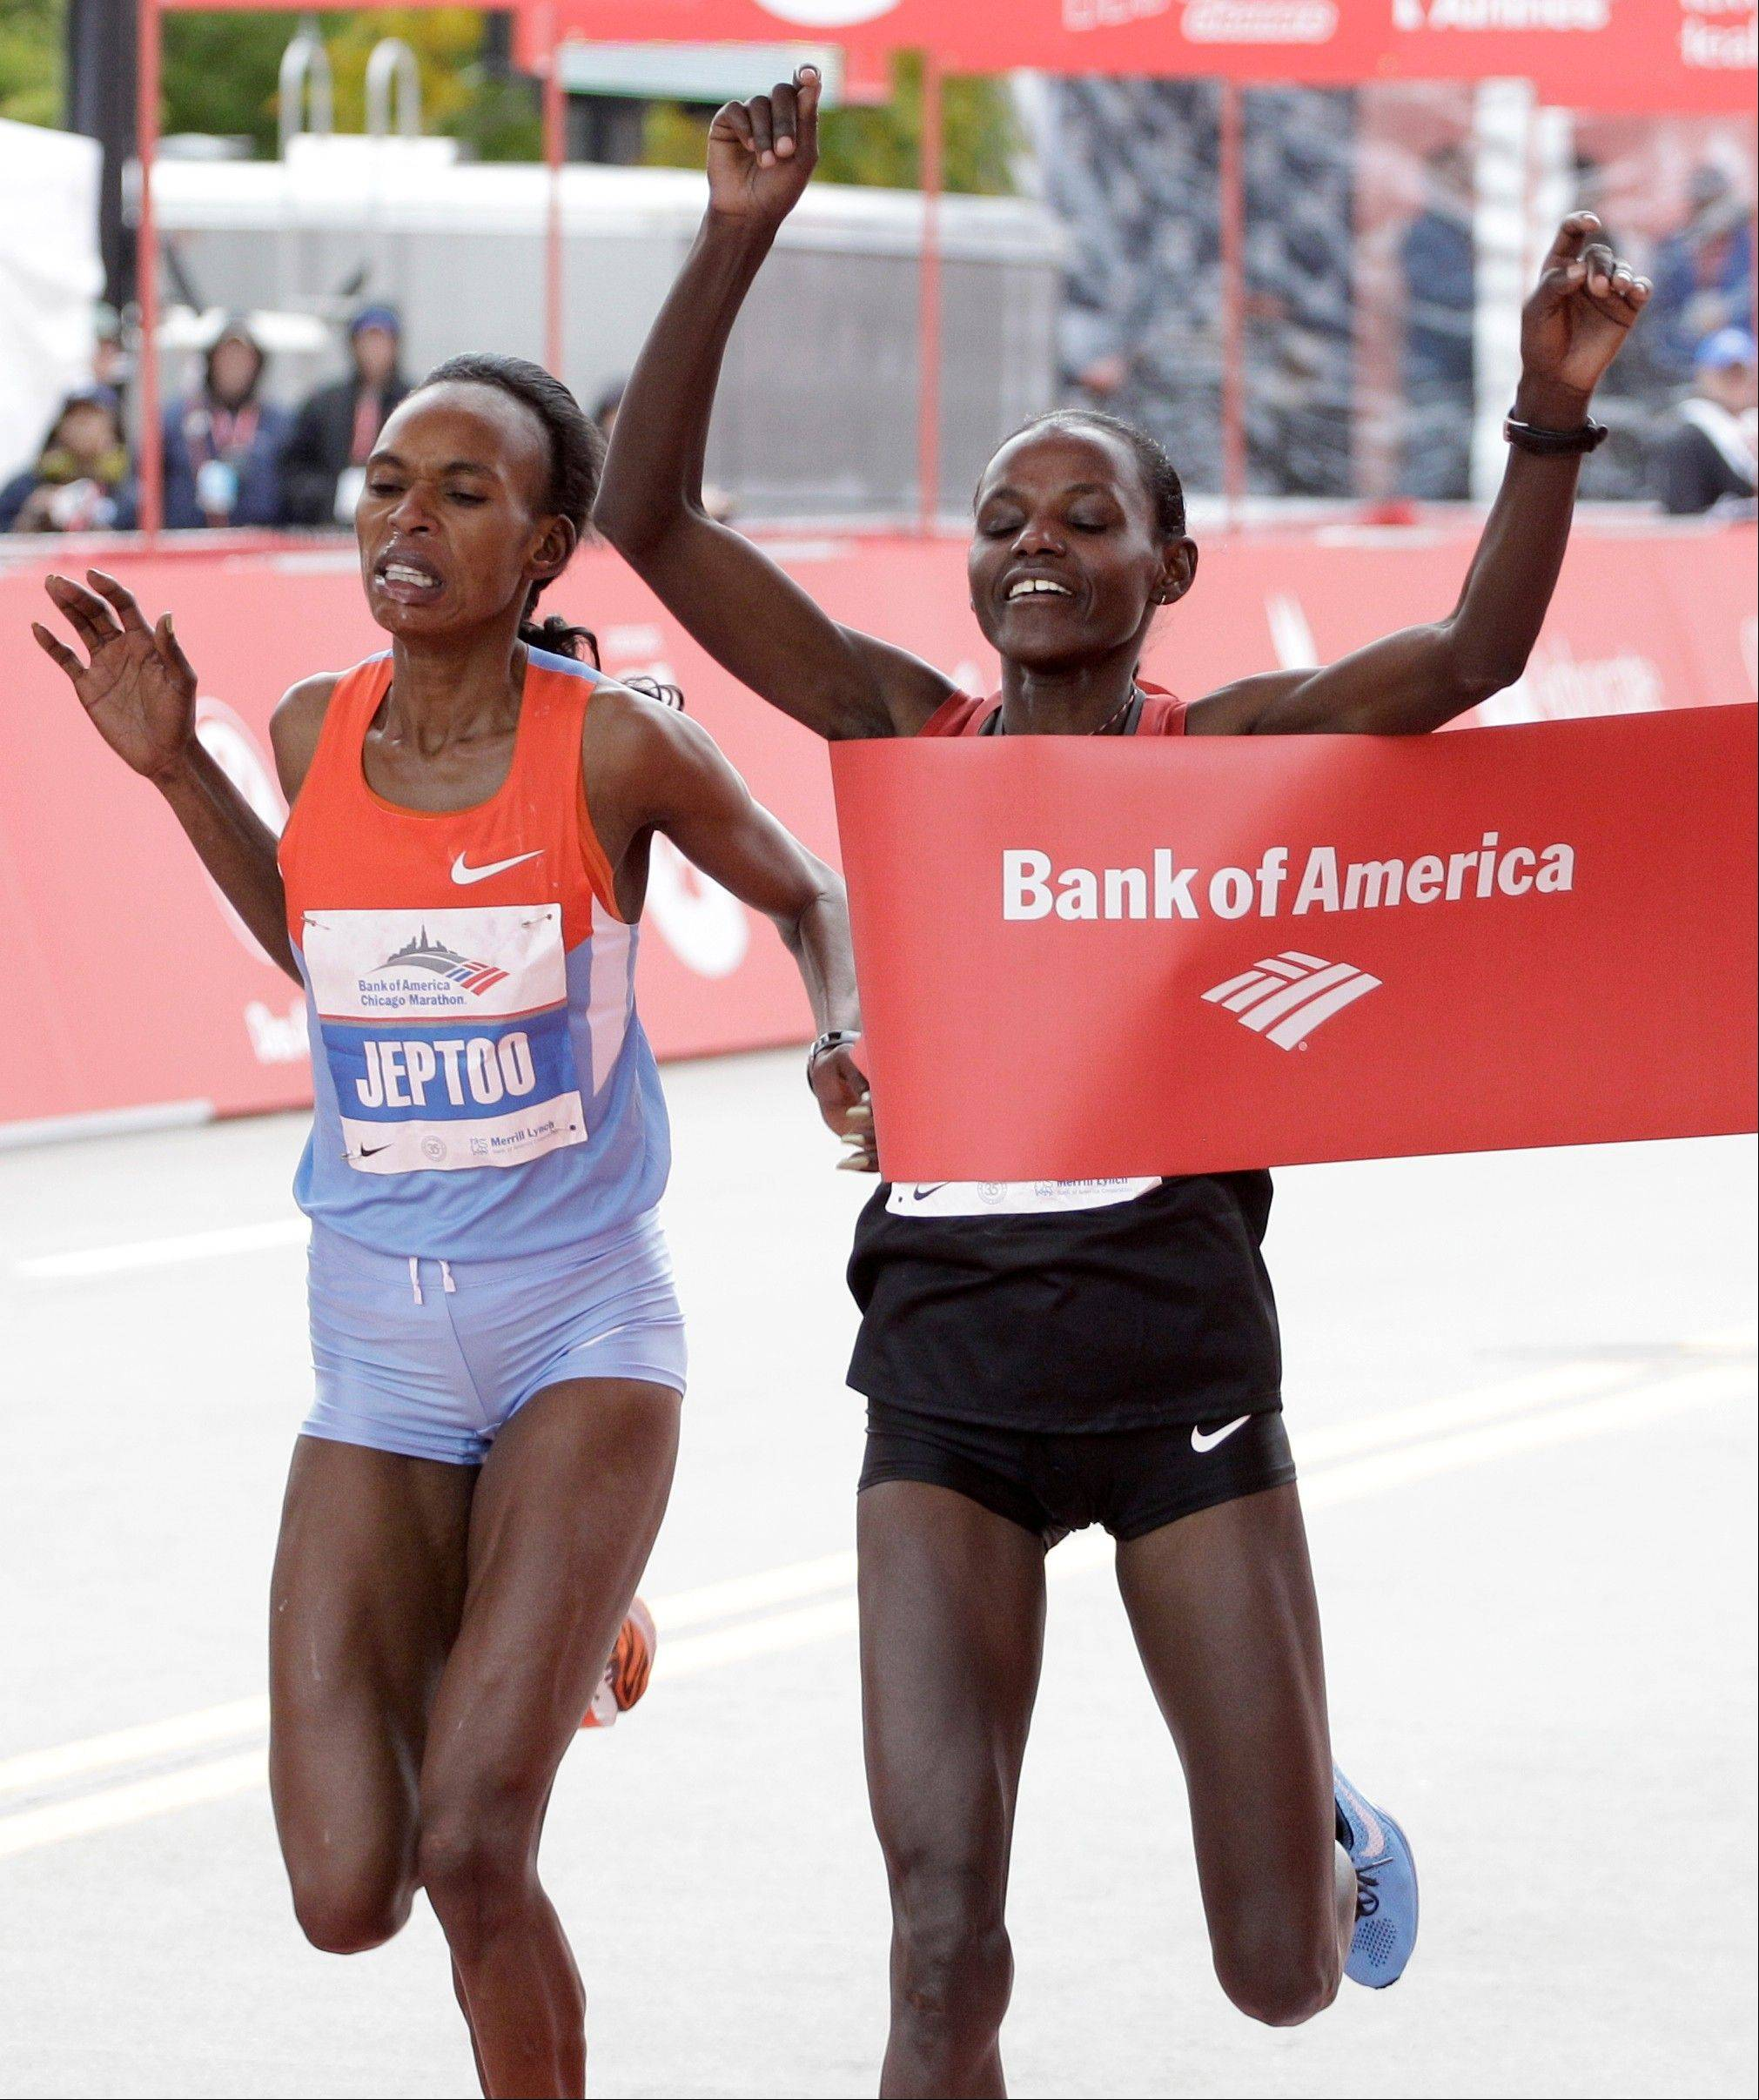 Atsede Baysa of Ethiopia, right, edges out Kenya's Rita Jeptoo to win the women's race at the Chicago Marathon.